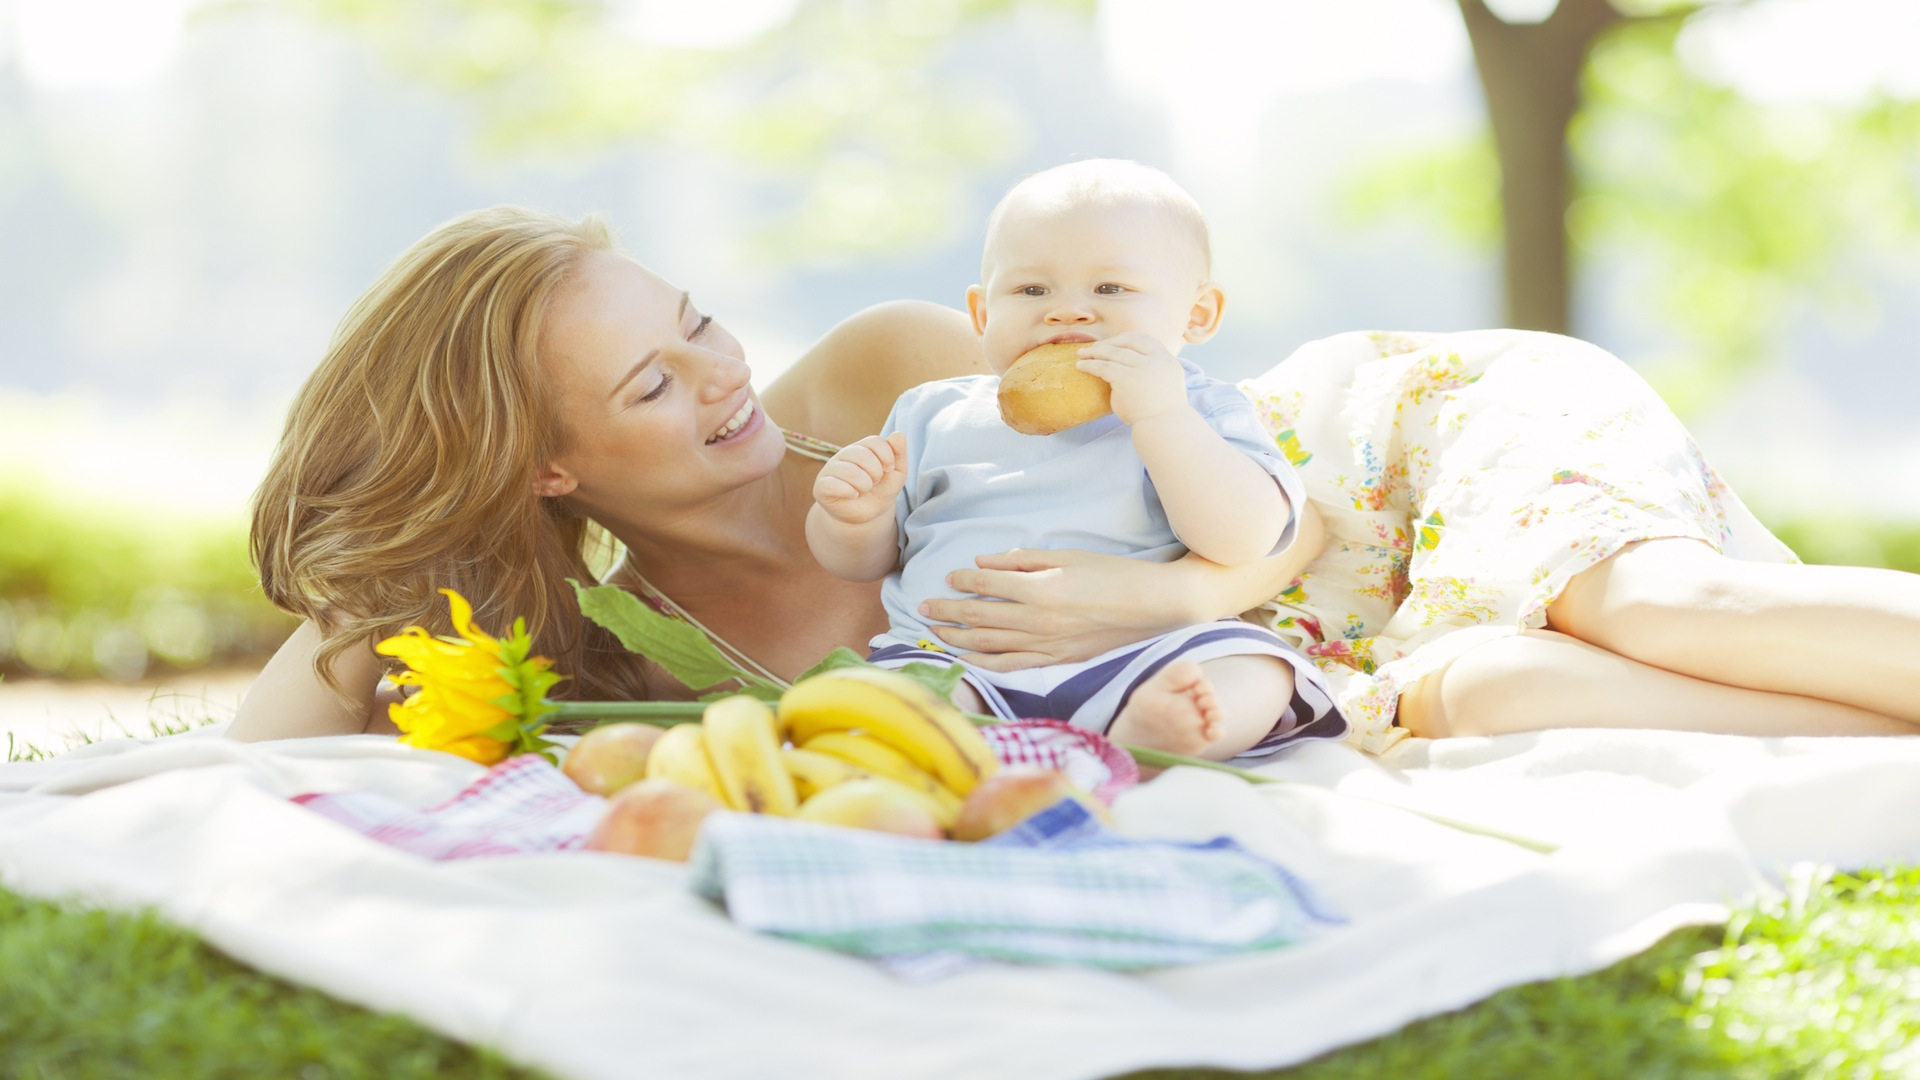 Mom and baby having a picnic